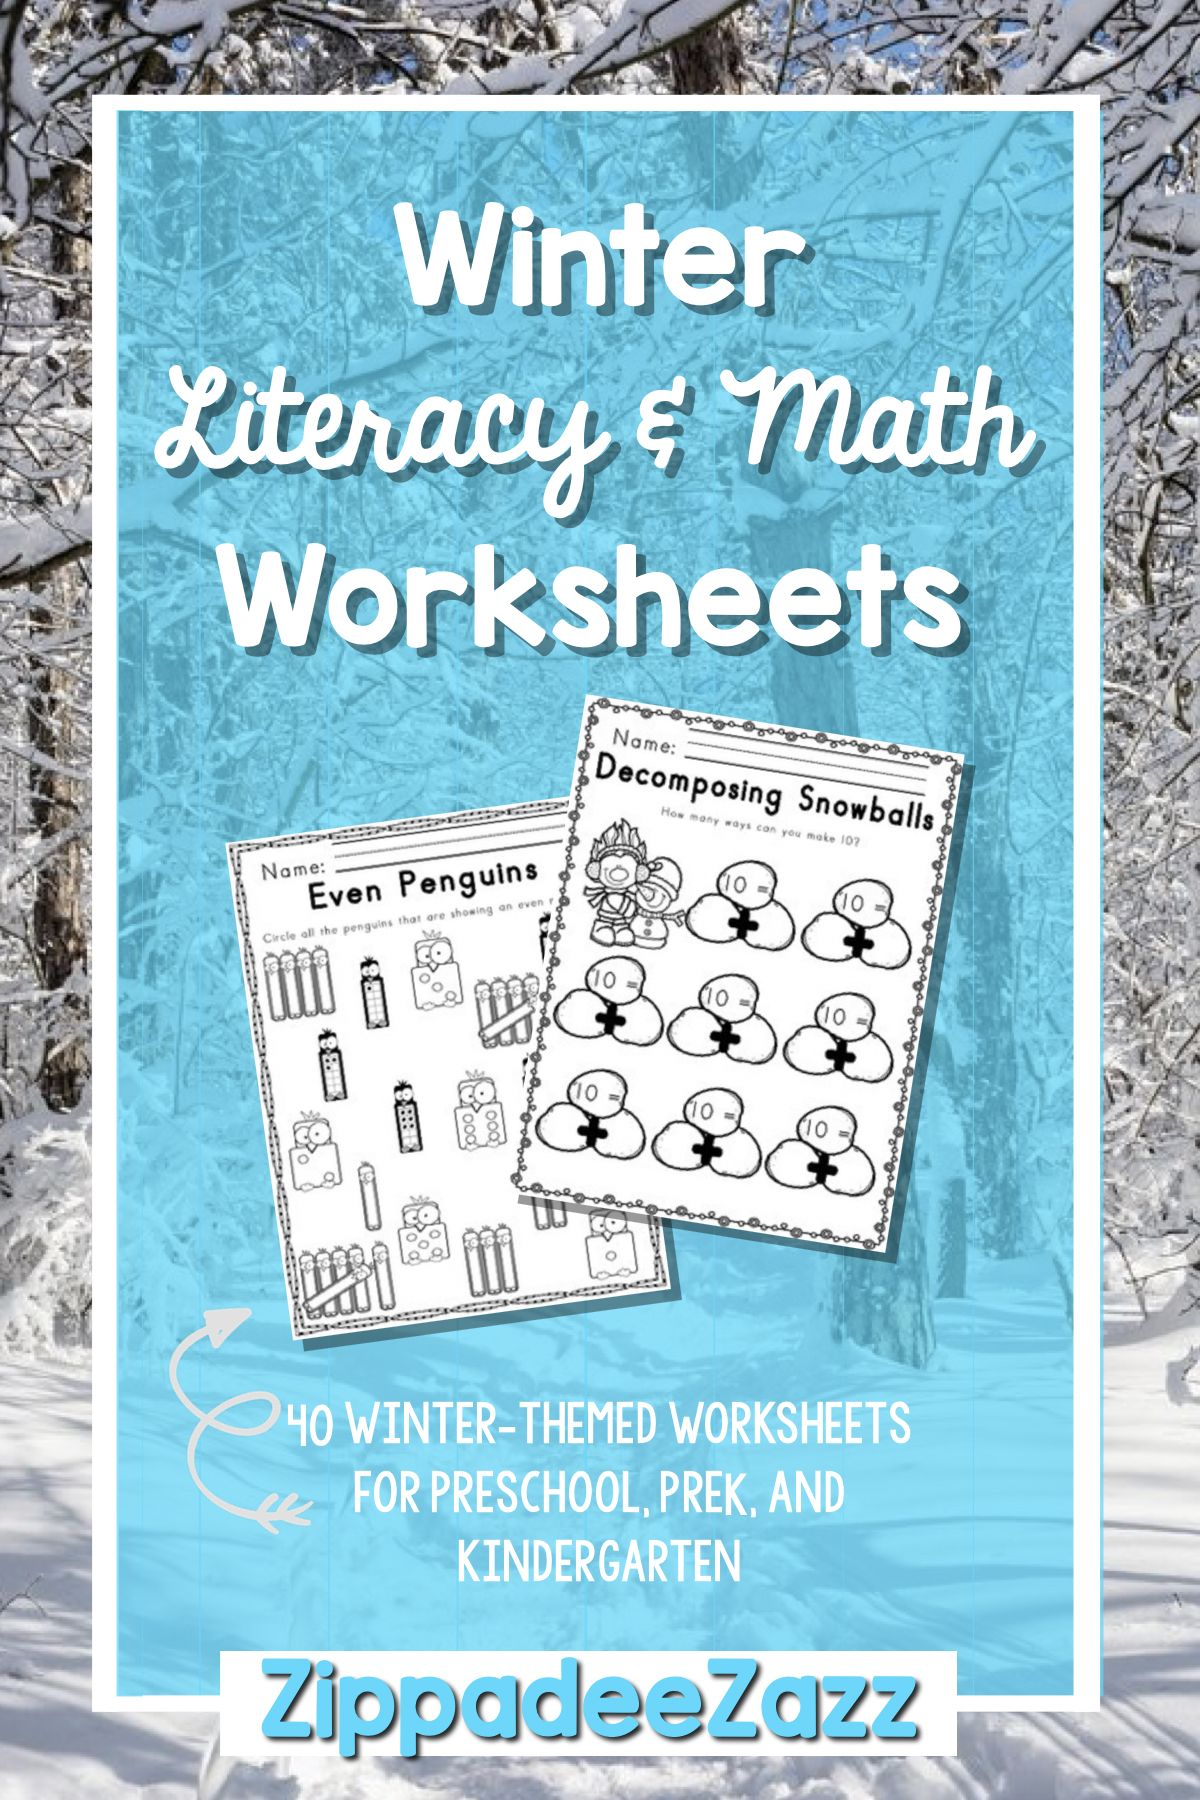 Worksheets for Winter ELA Literacy and Math Activities | My ...